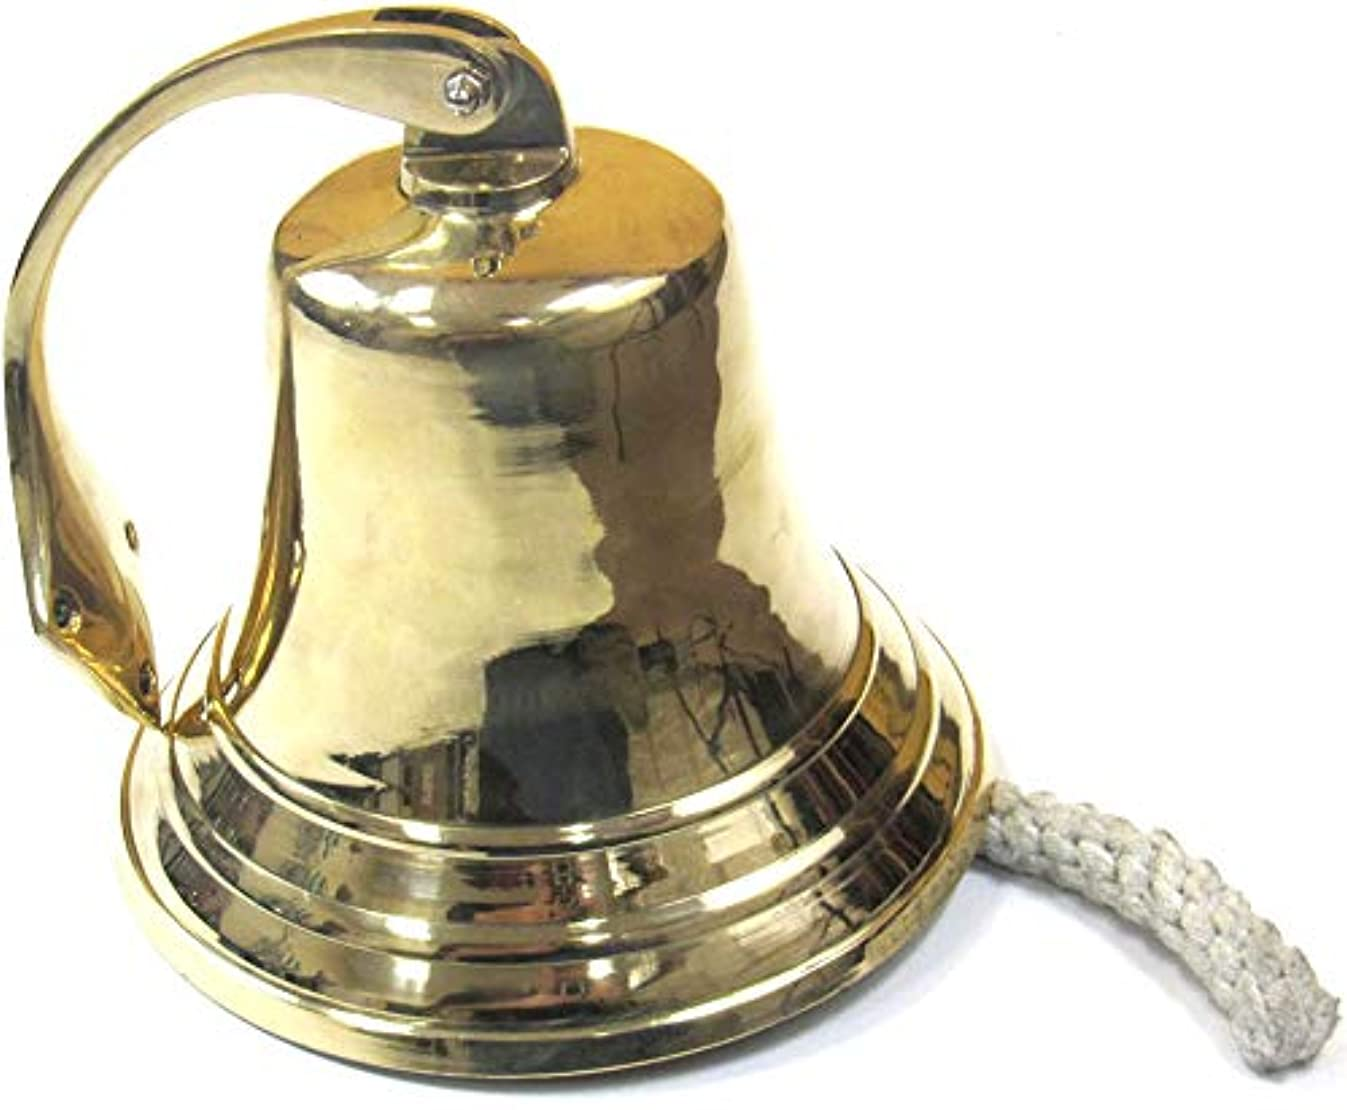 Solid Brass Wall Hanging Ship Bell with Rope Polished Dinner Bell Tip Bell Indoor/Outdoor Nautical Decoration Bells Variety with Mounting Hardware Bracket Ship Boat Maritime Decor